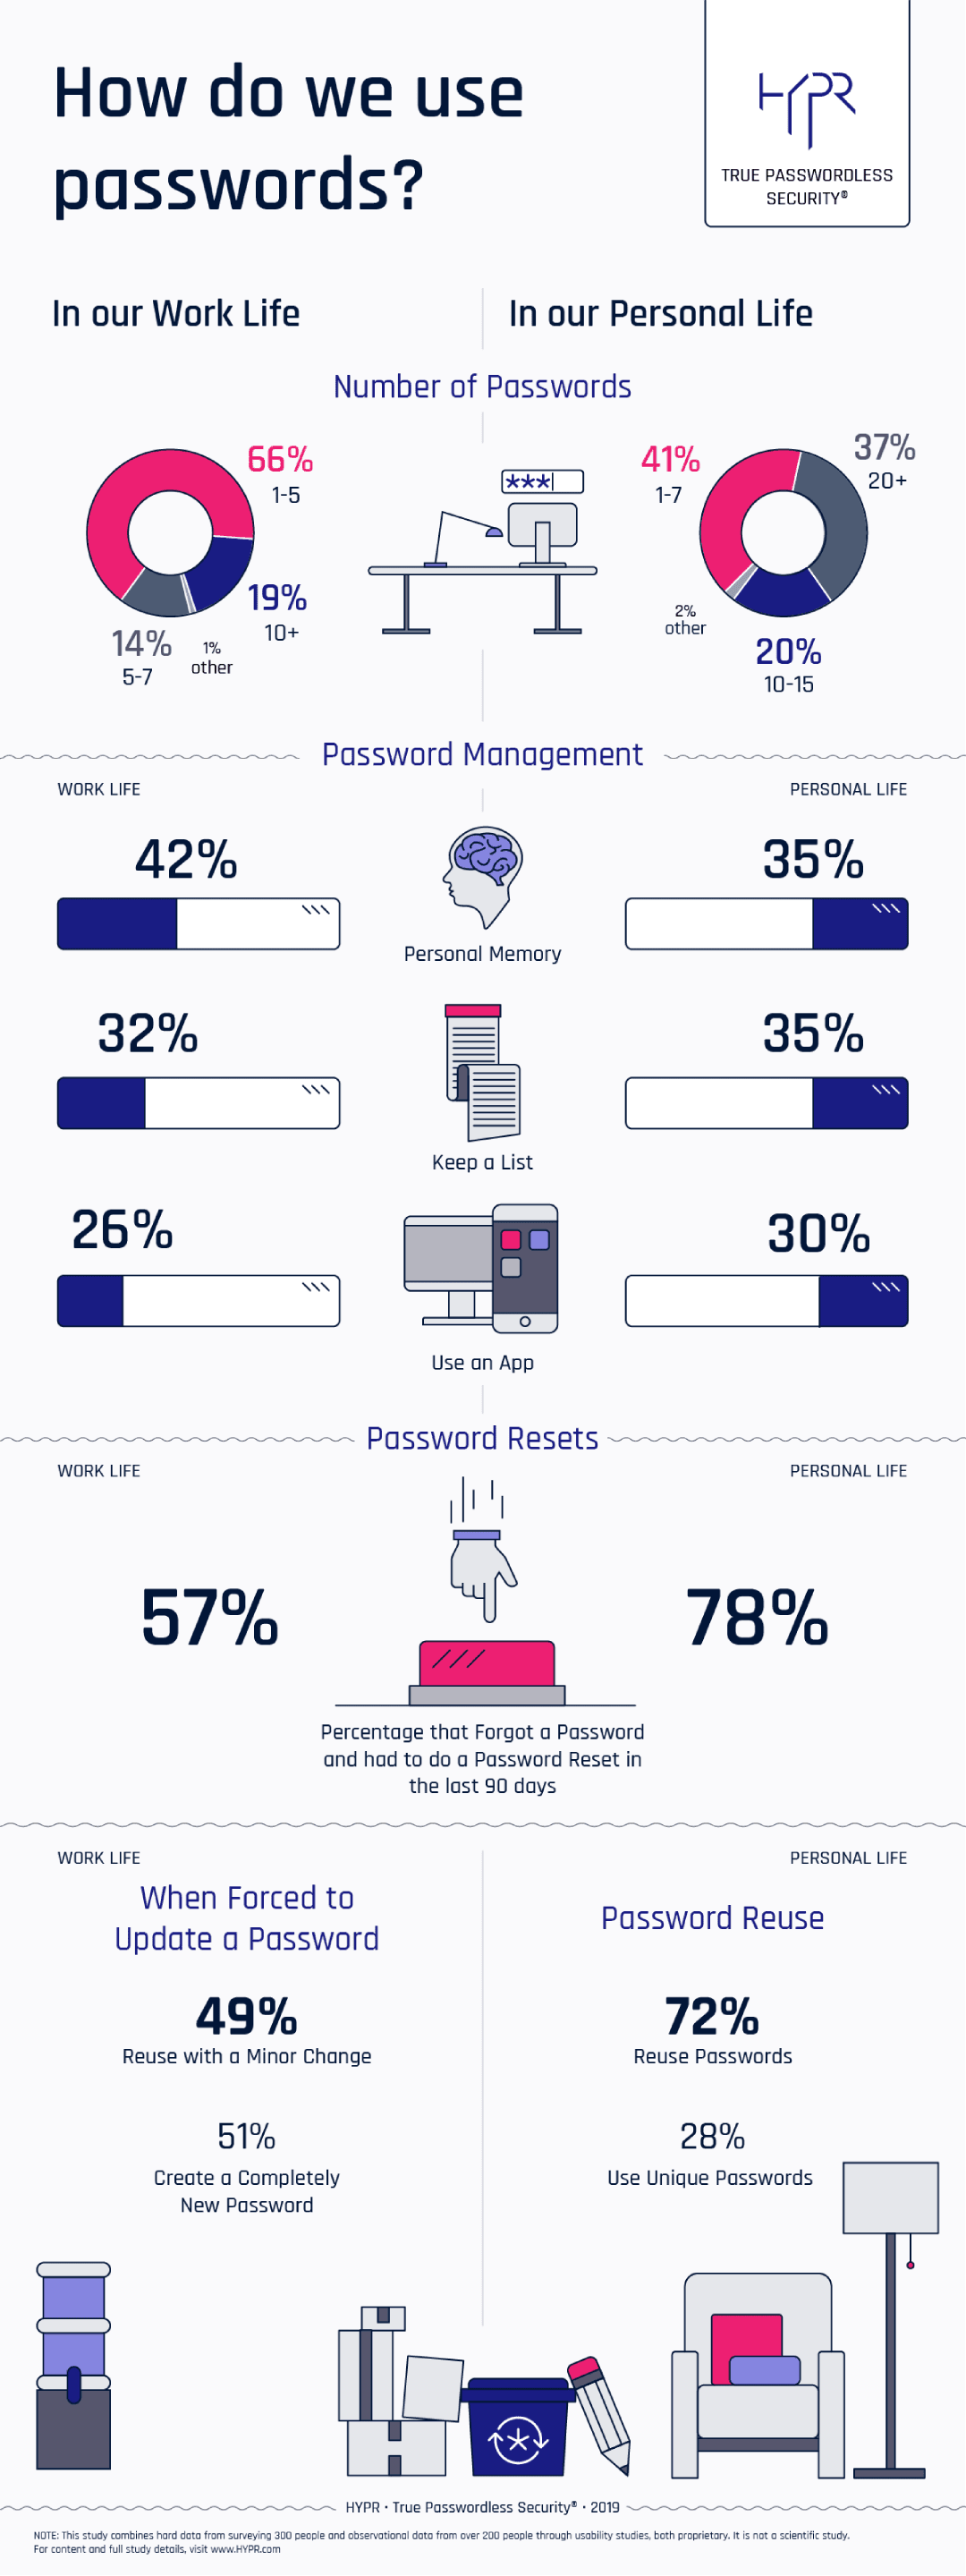 78% of People Had to Reset a Password They Forgot in Past 90 Days